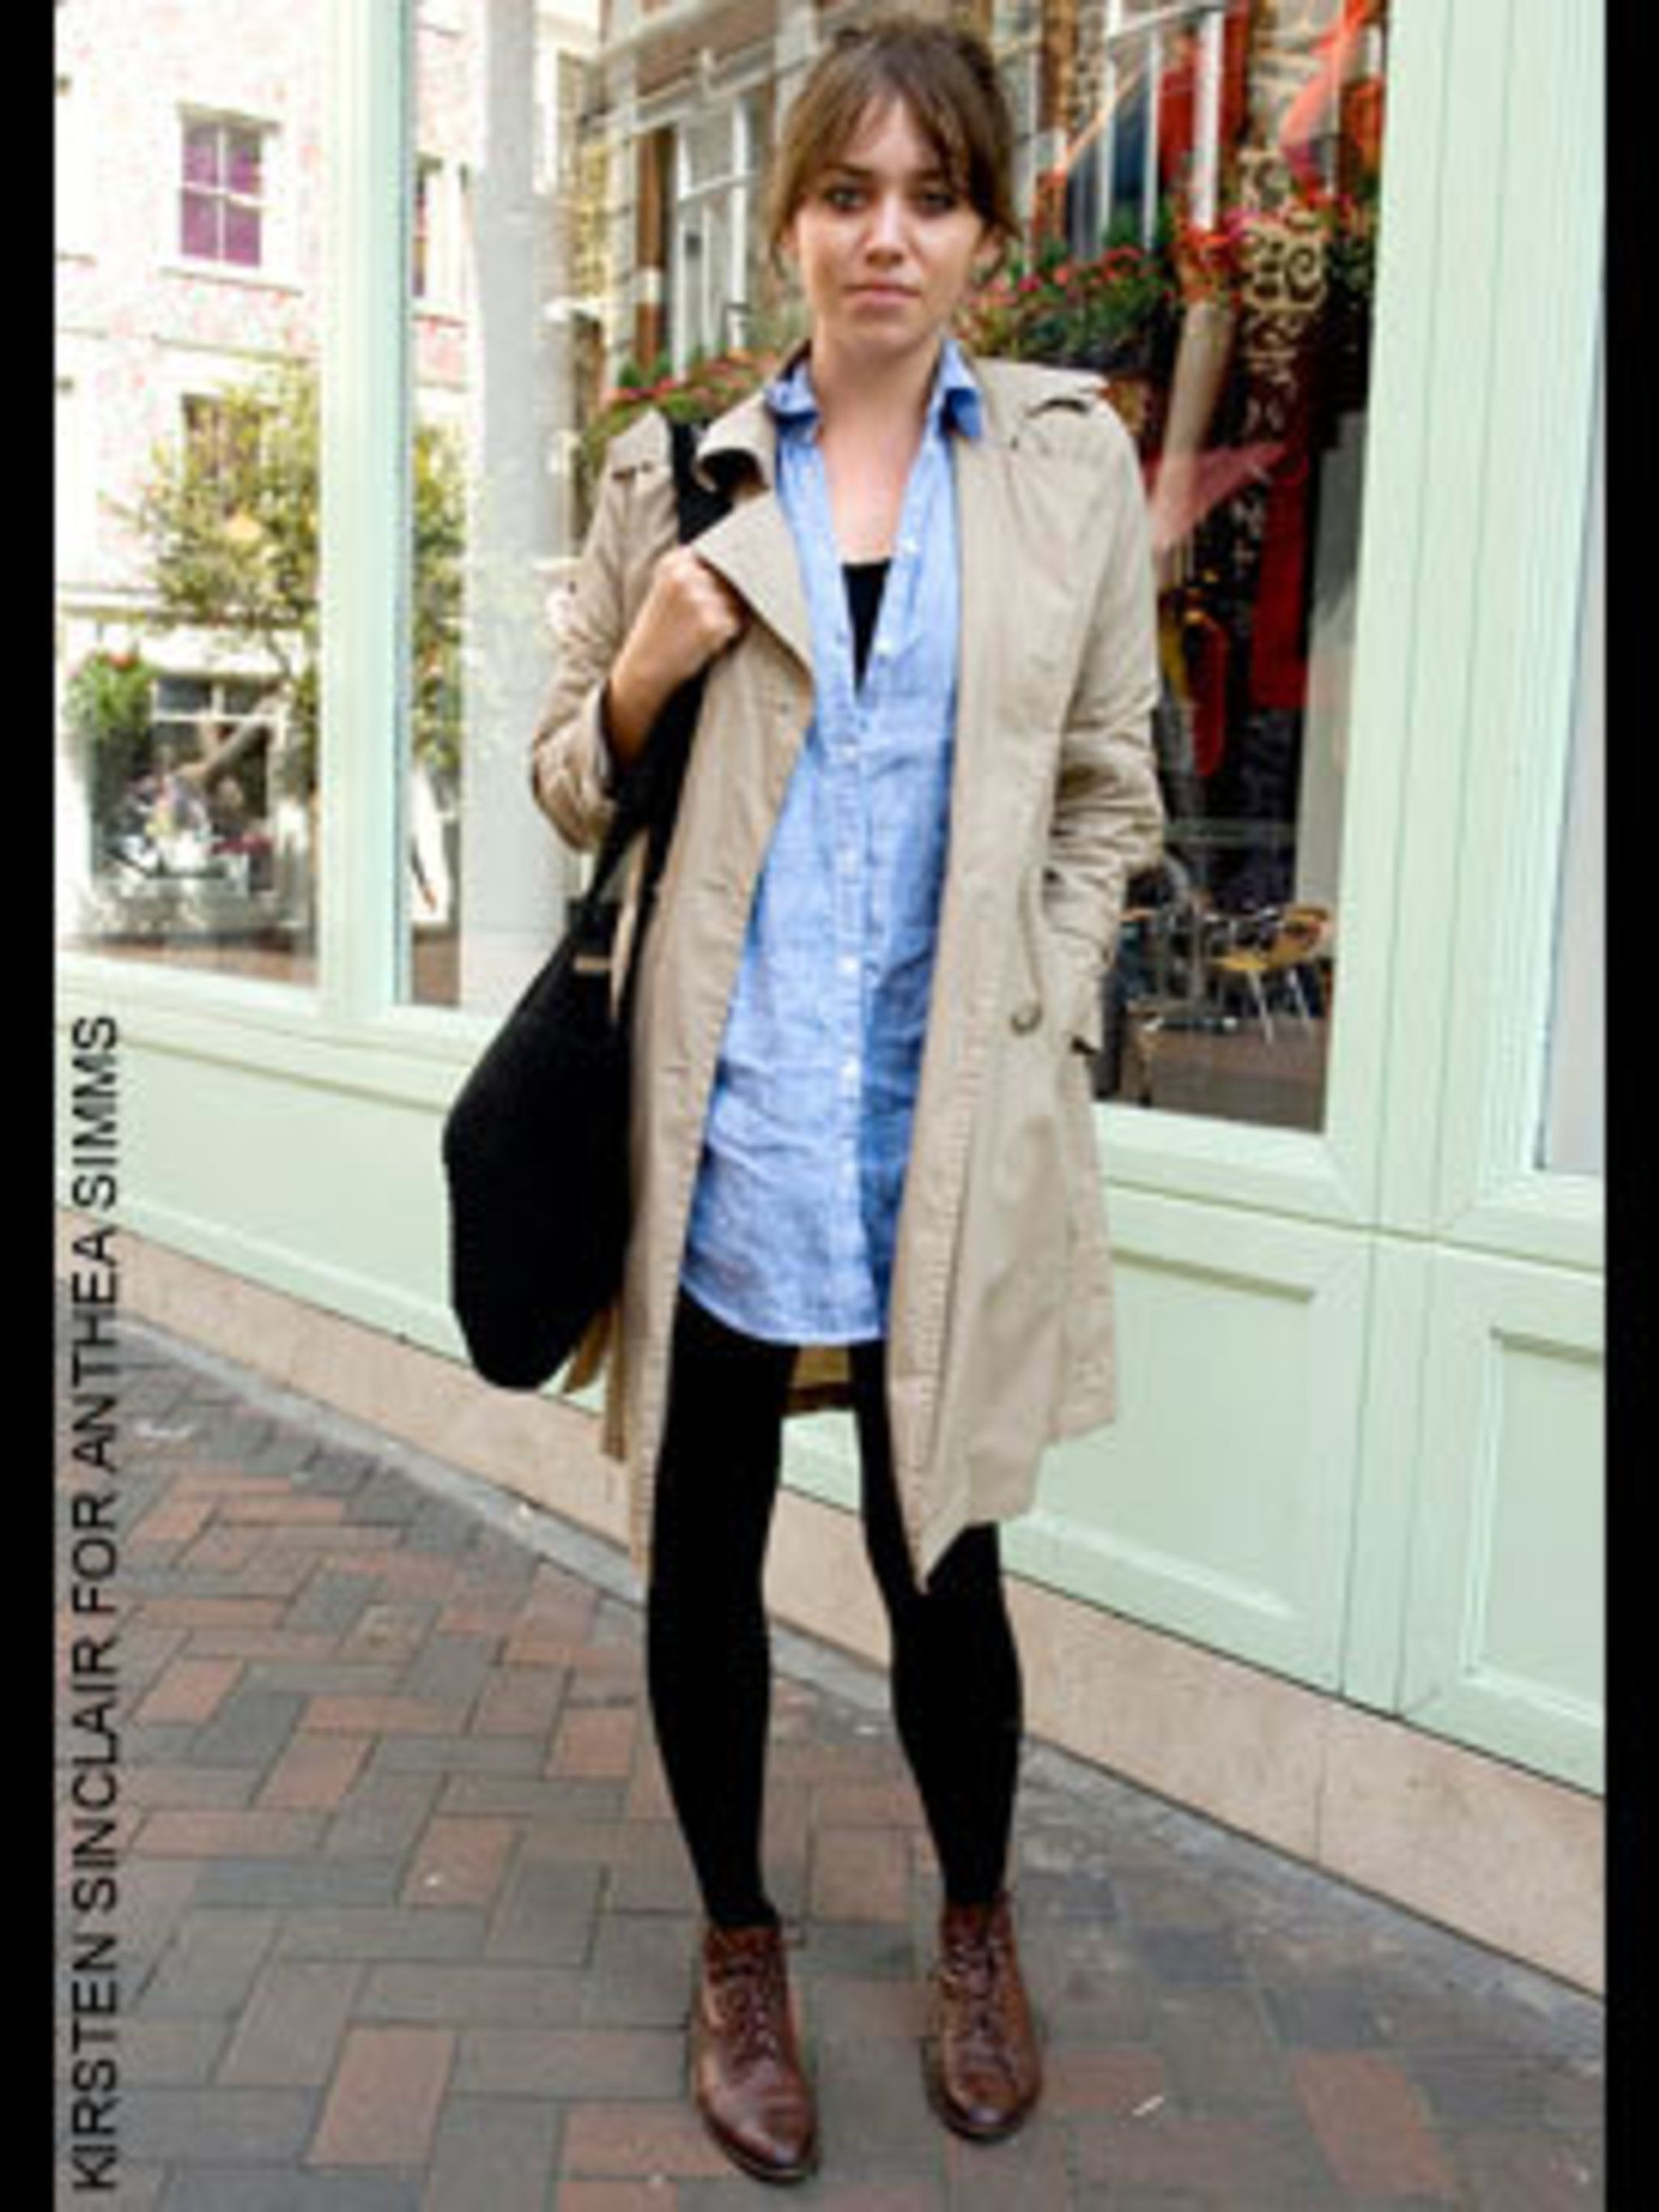 <p>Cosi a Buyer from London wearing a jacket from gap, shirt from H&amp&#x3B;M, bag andboots from a vintage shop in L.A.</p>